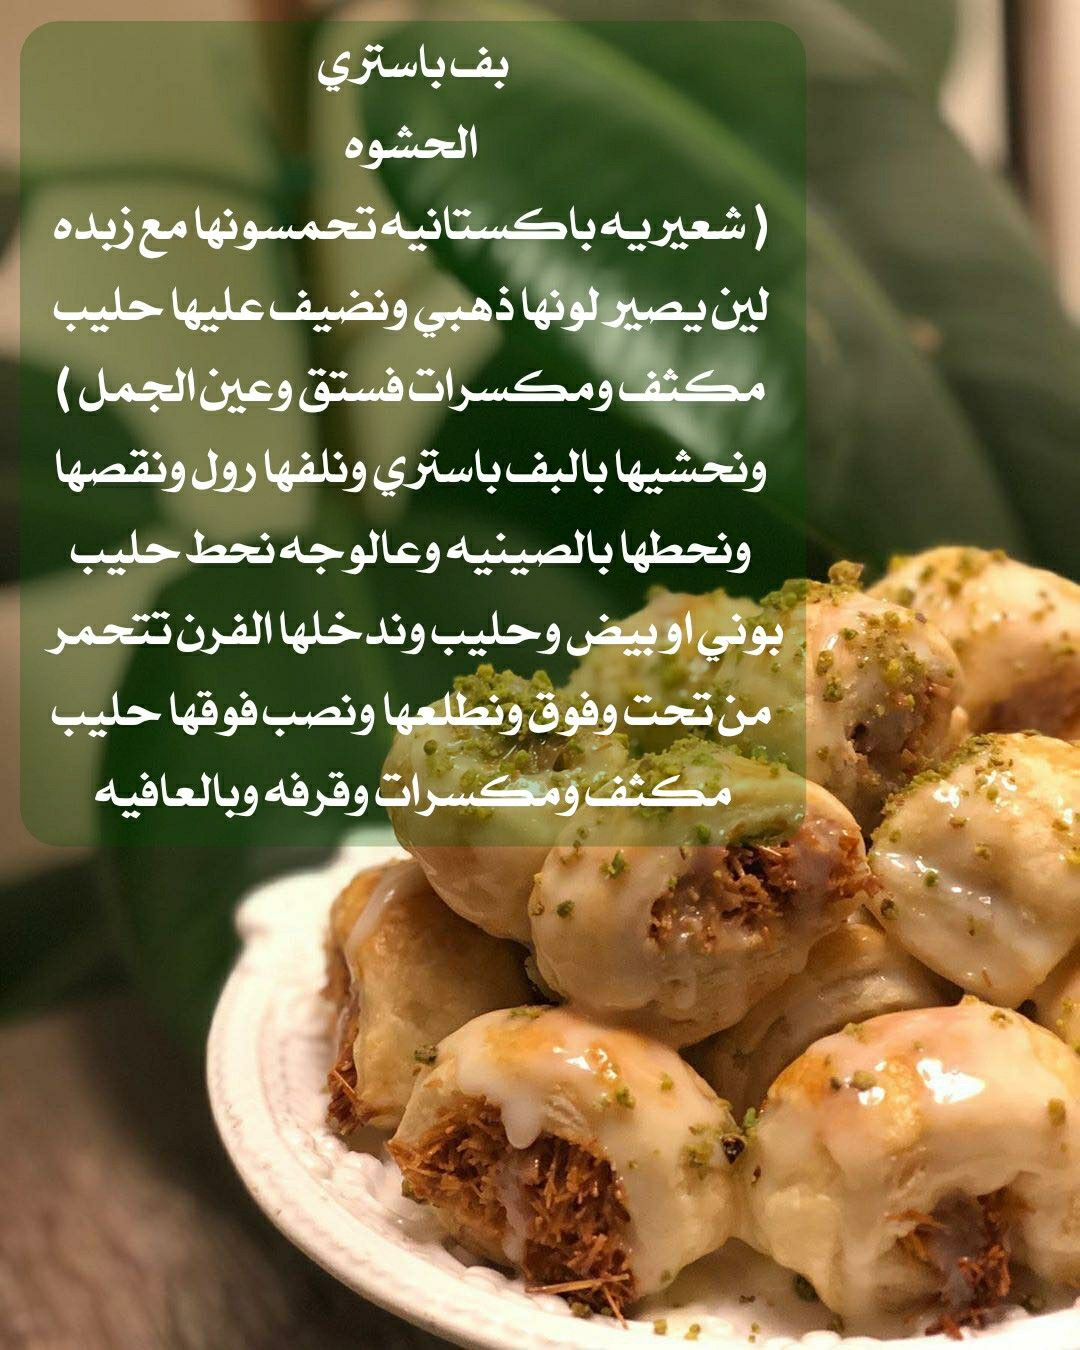 Pin By Me On طبخ من تجميعي Cookout Food Save Food Recipes